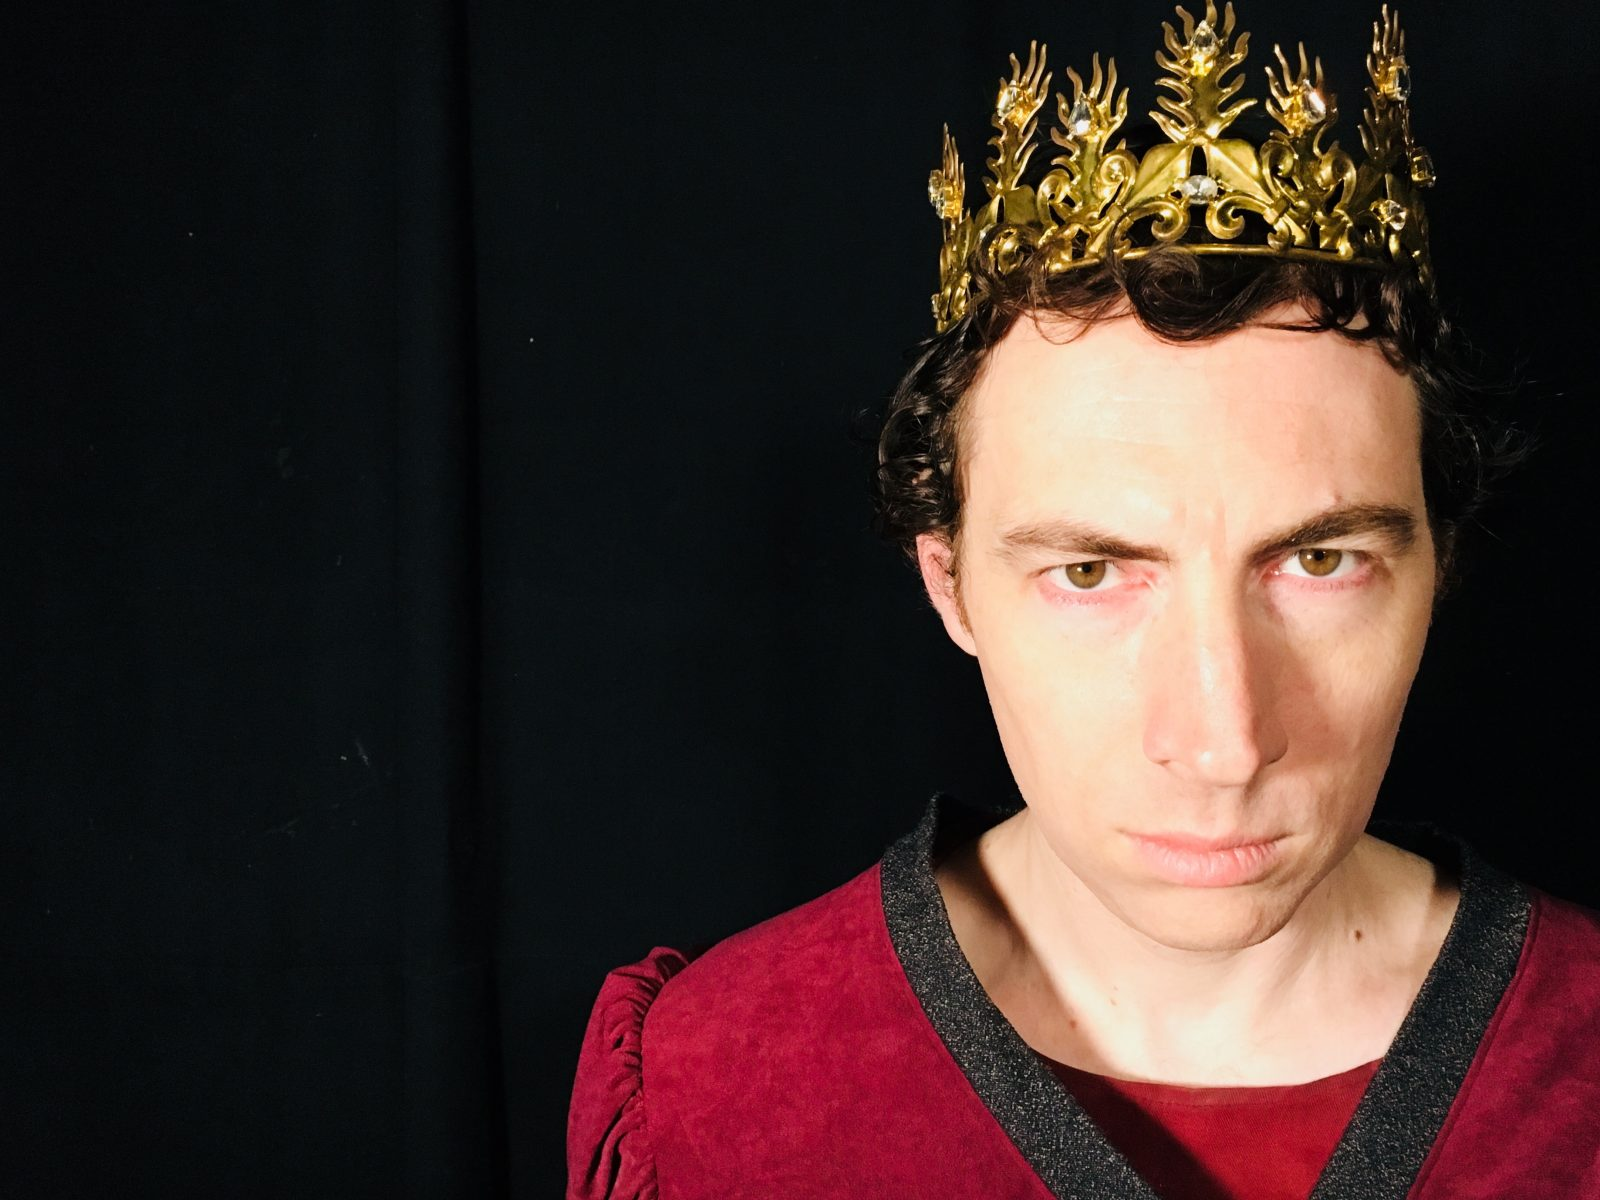 Richard Cox as King John in The Life and Death of King John for Bard On The Beach.